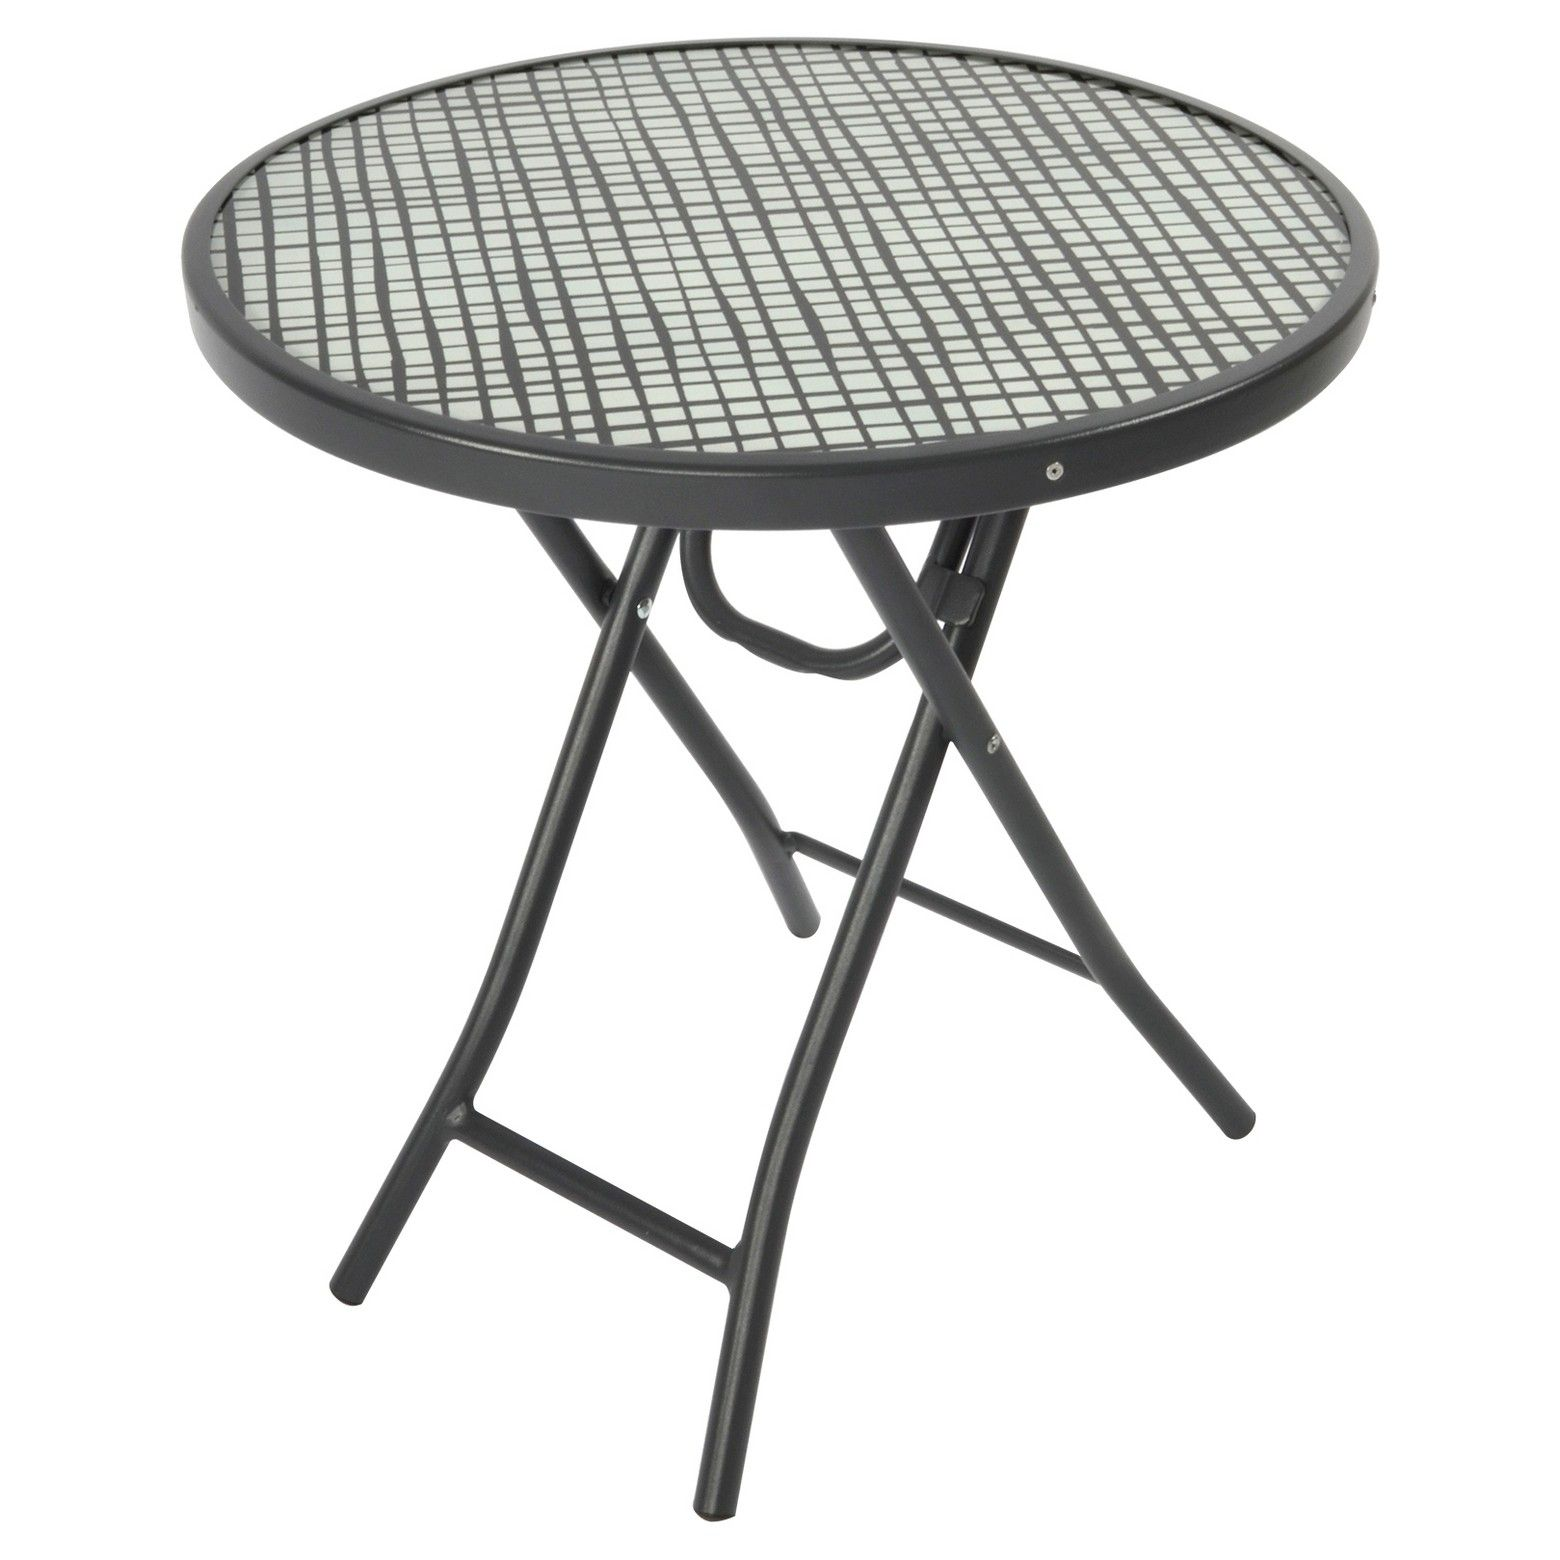 bistro round folding accent table black white pattern room essentials dining inch end small mirrored metal glass top side gold decor ikea lounge pottery barn tures waterproof